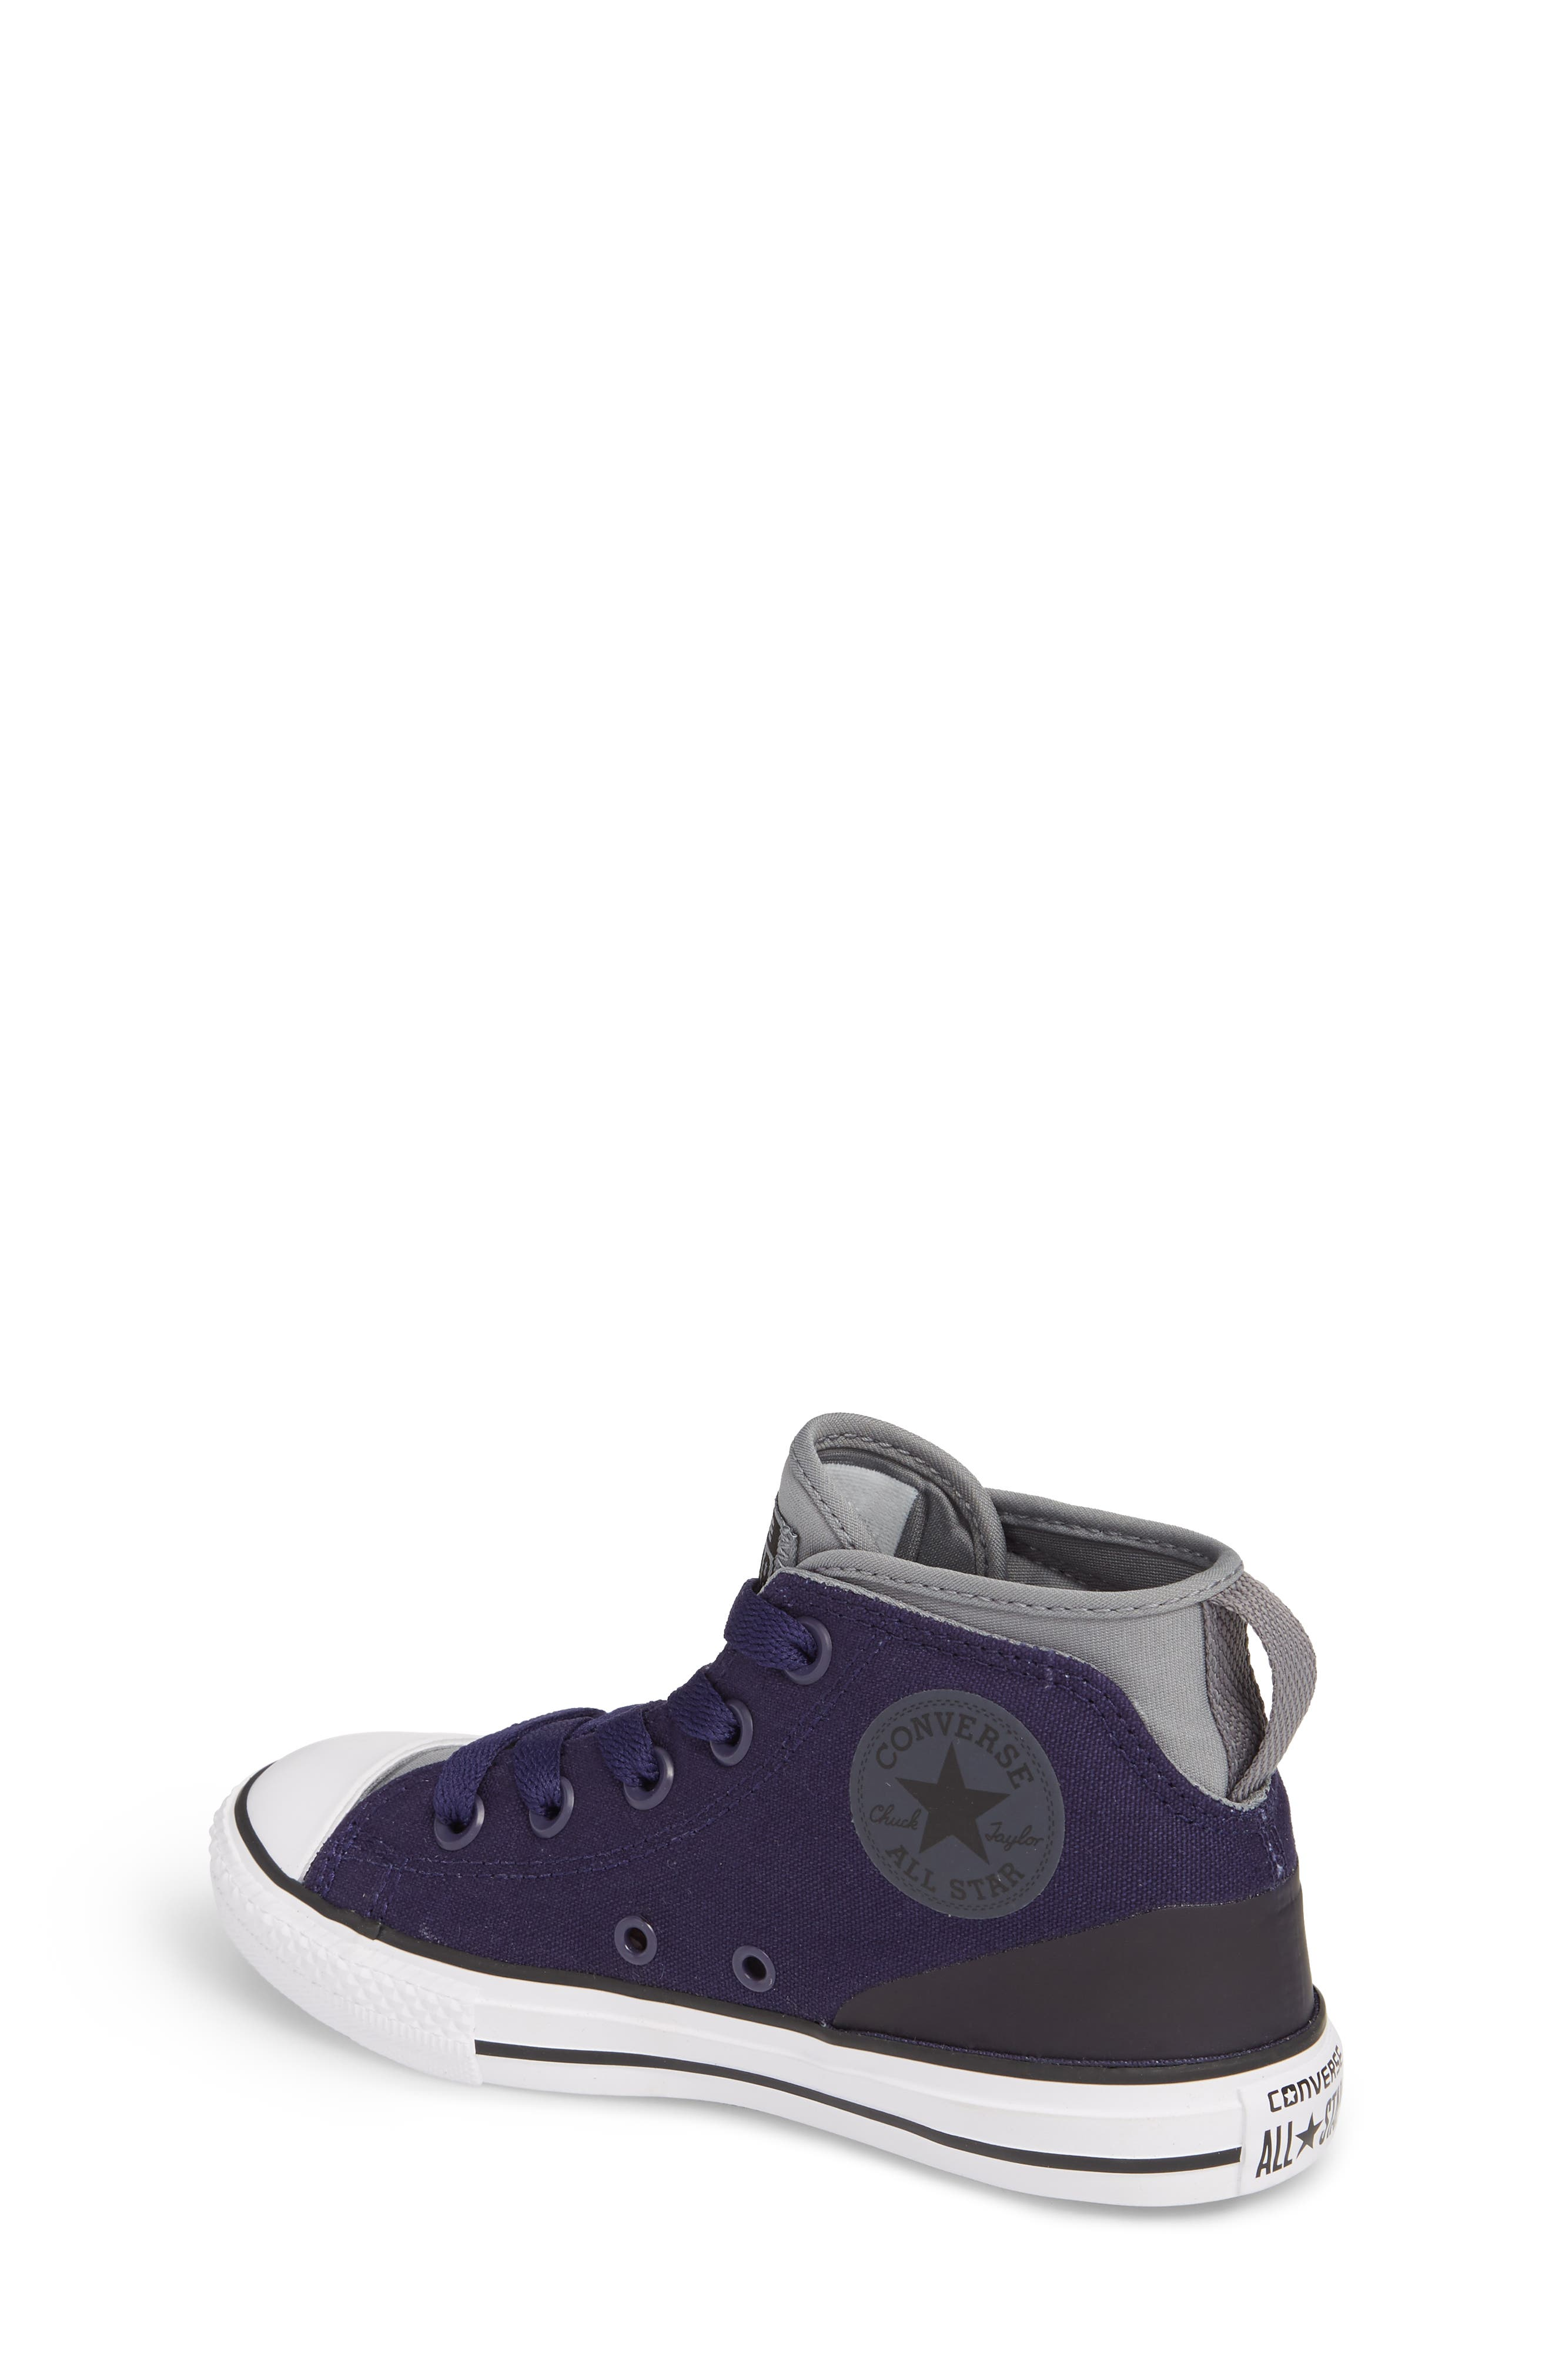 Chuck Taylor<sup>®</sup> All Star<sup>®</sup> Syde Street High Top Sneaker,                             Alternate thumbnail 2, color,                             Midnight Canvas